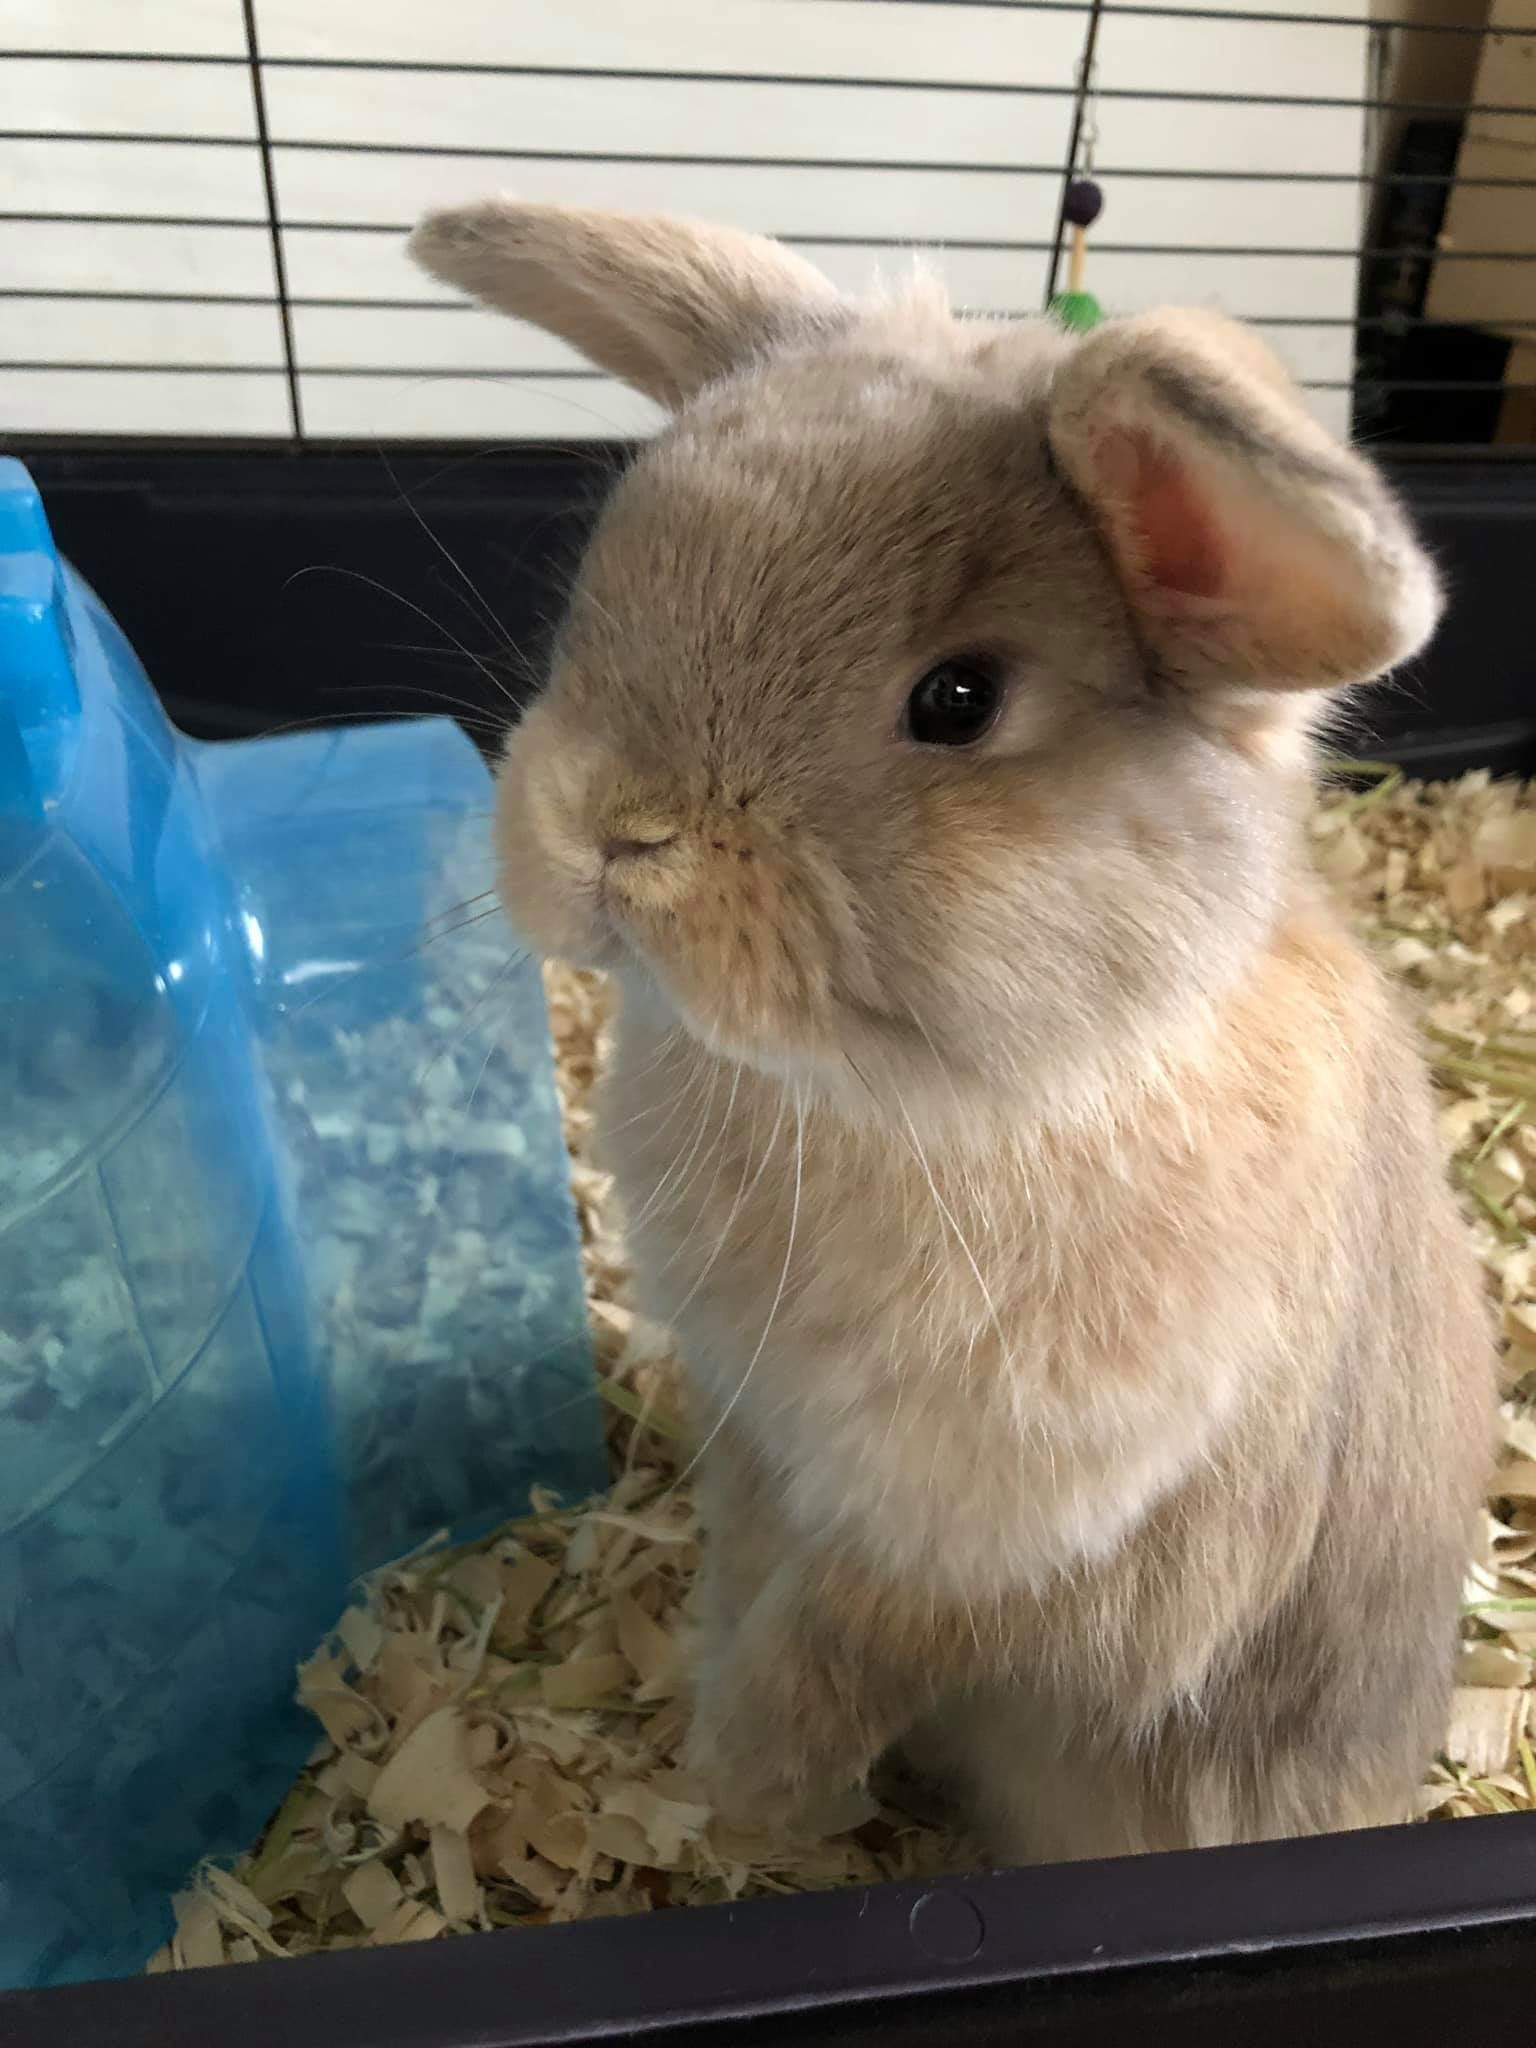 100 Top Voted Ideas for Pet Rabbits.. Our 4 month old